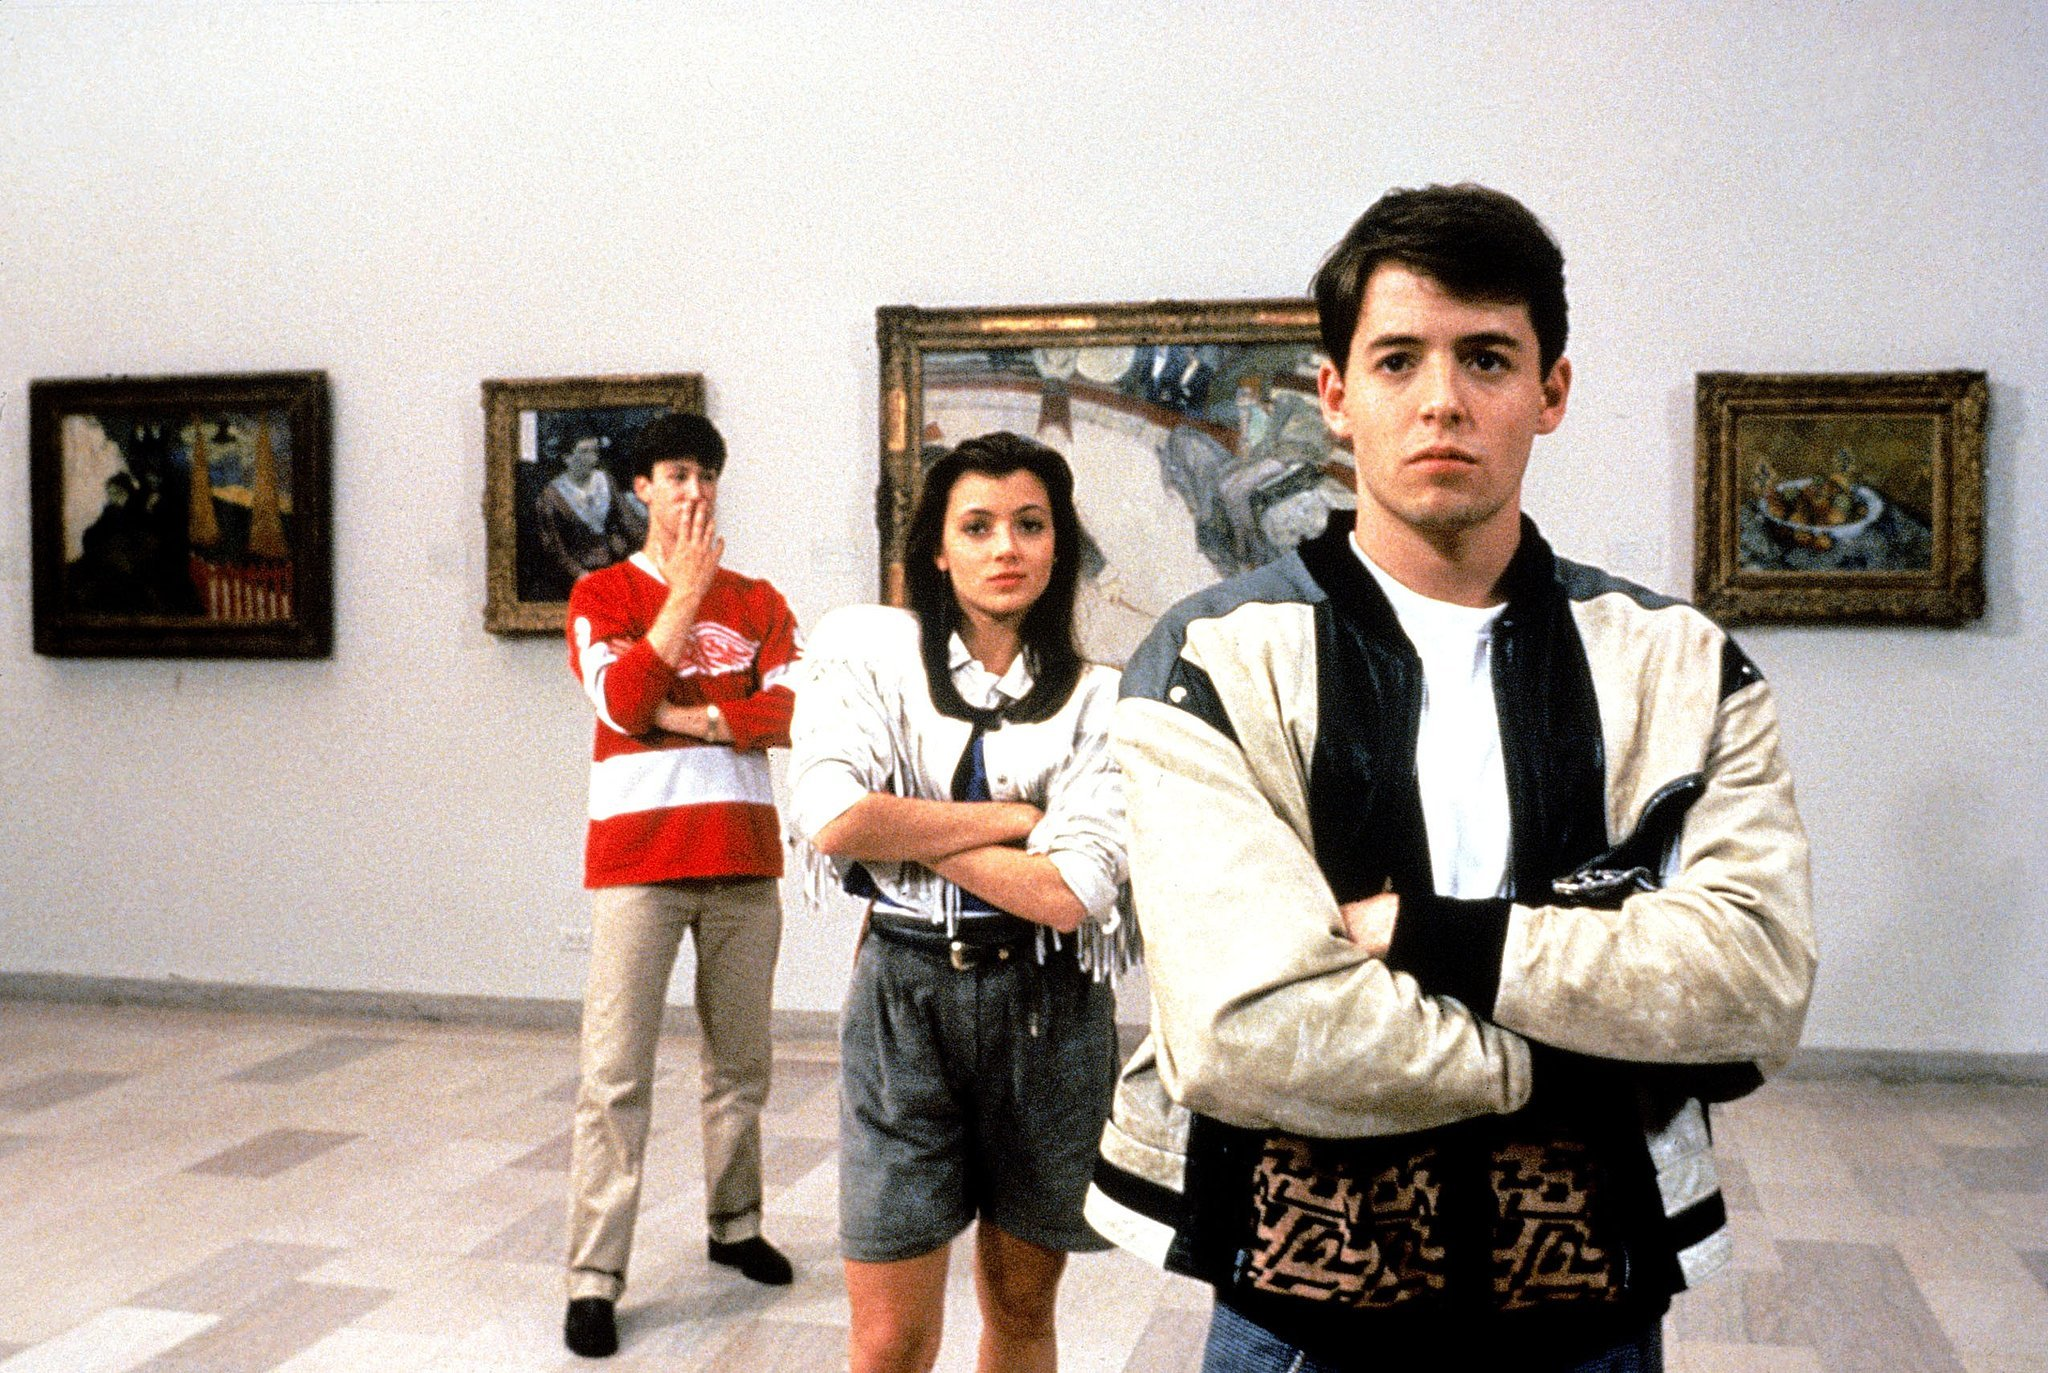 Ferris-Sloane-Cameron-From-Ferris-Bueller-Day-Off